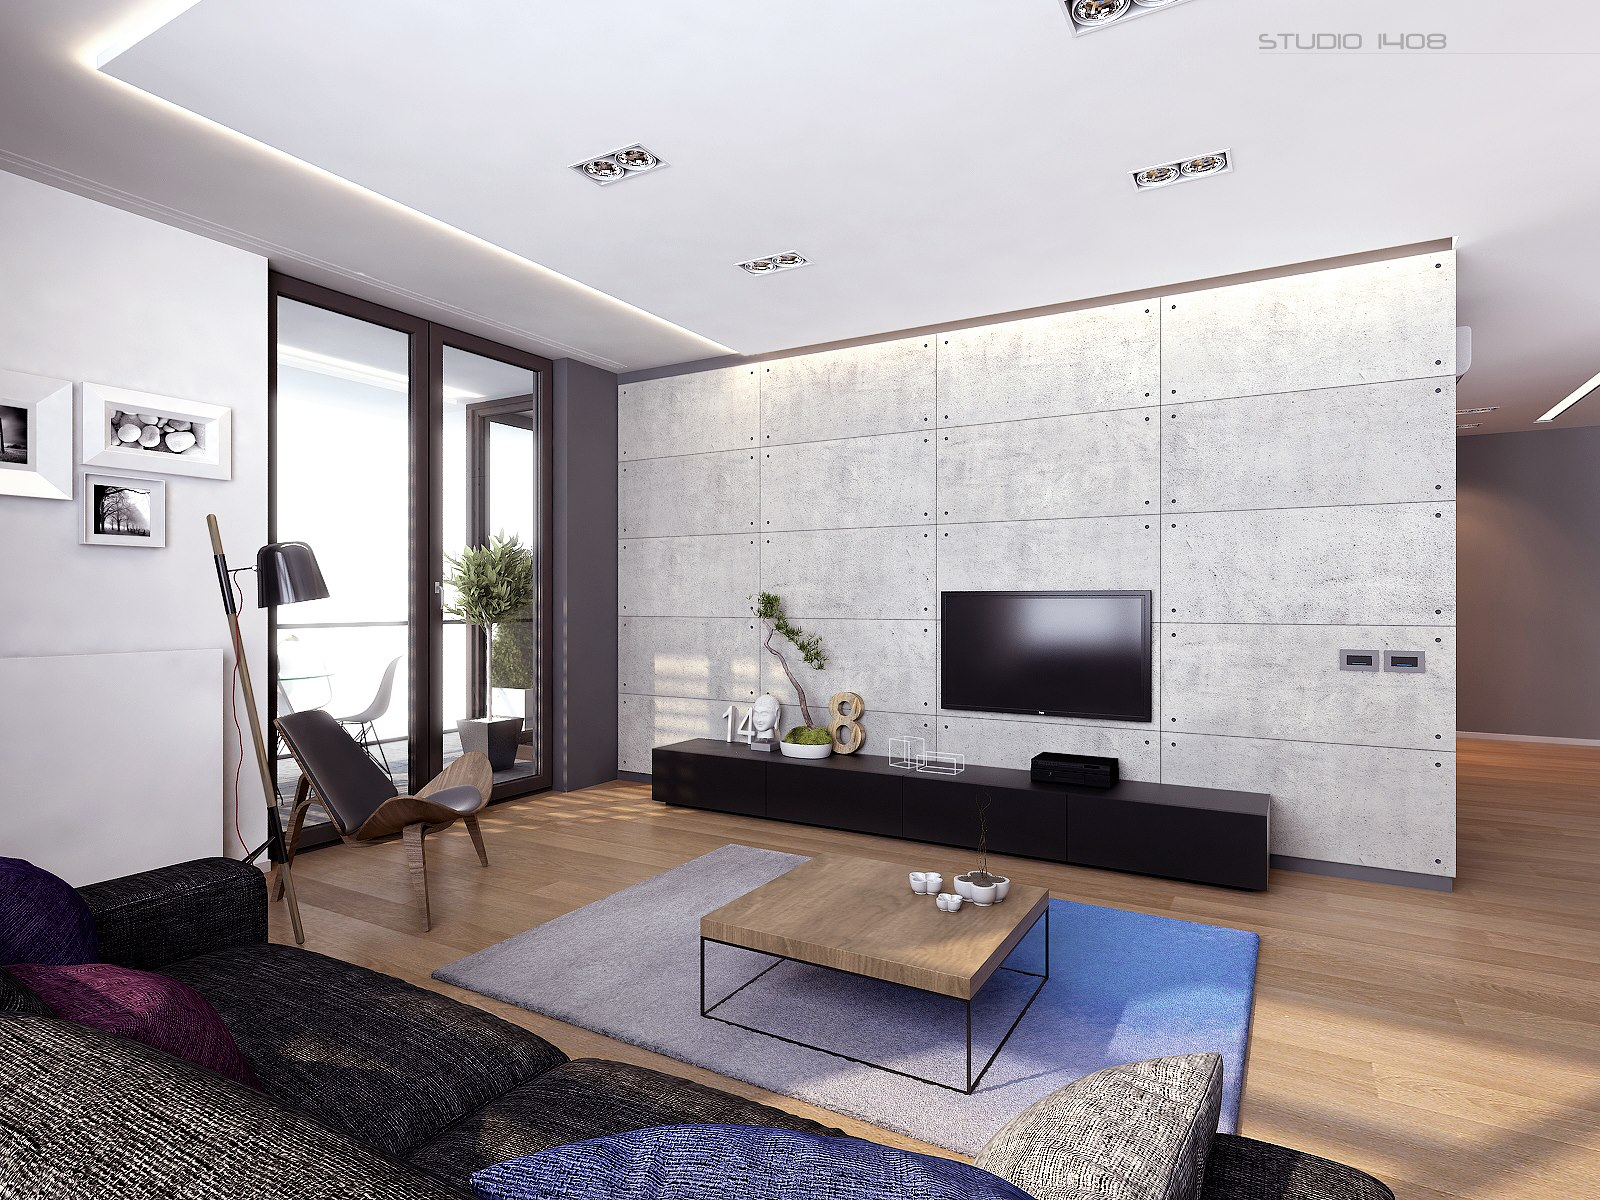 Fullsize Of Interior Design Apartment Living Room